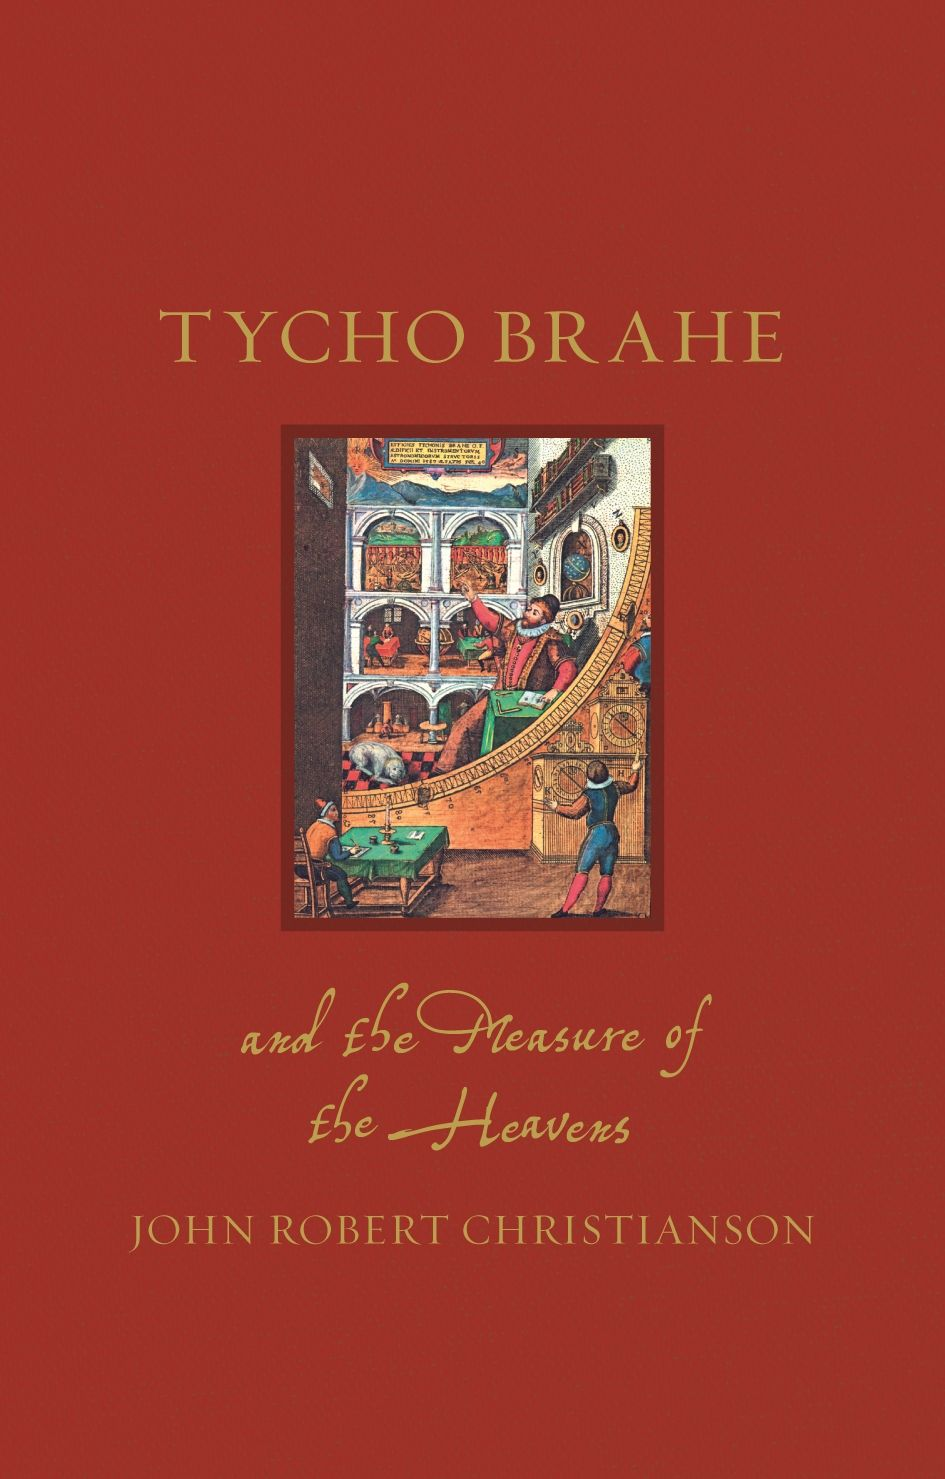 Tycho Brahe and the Measure of the Heavens